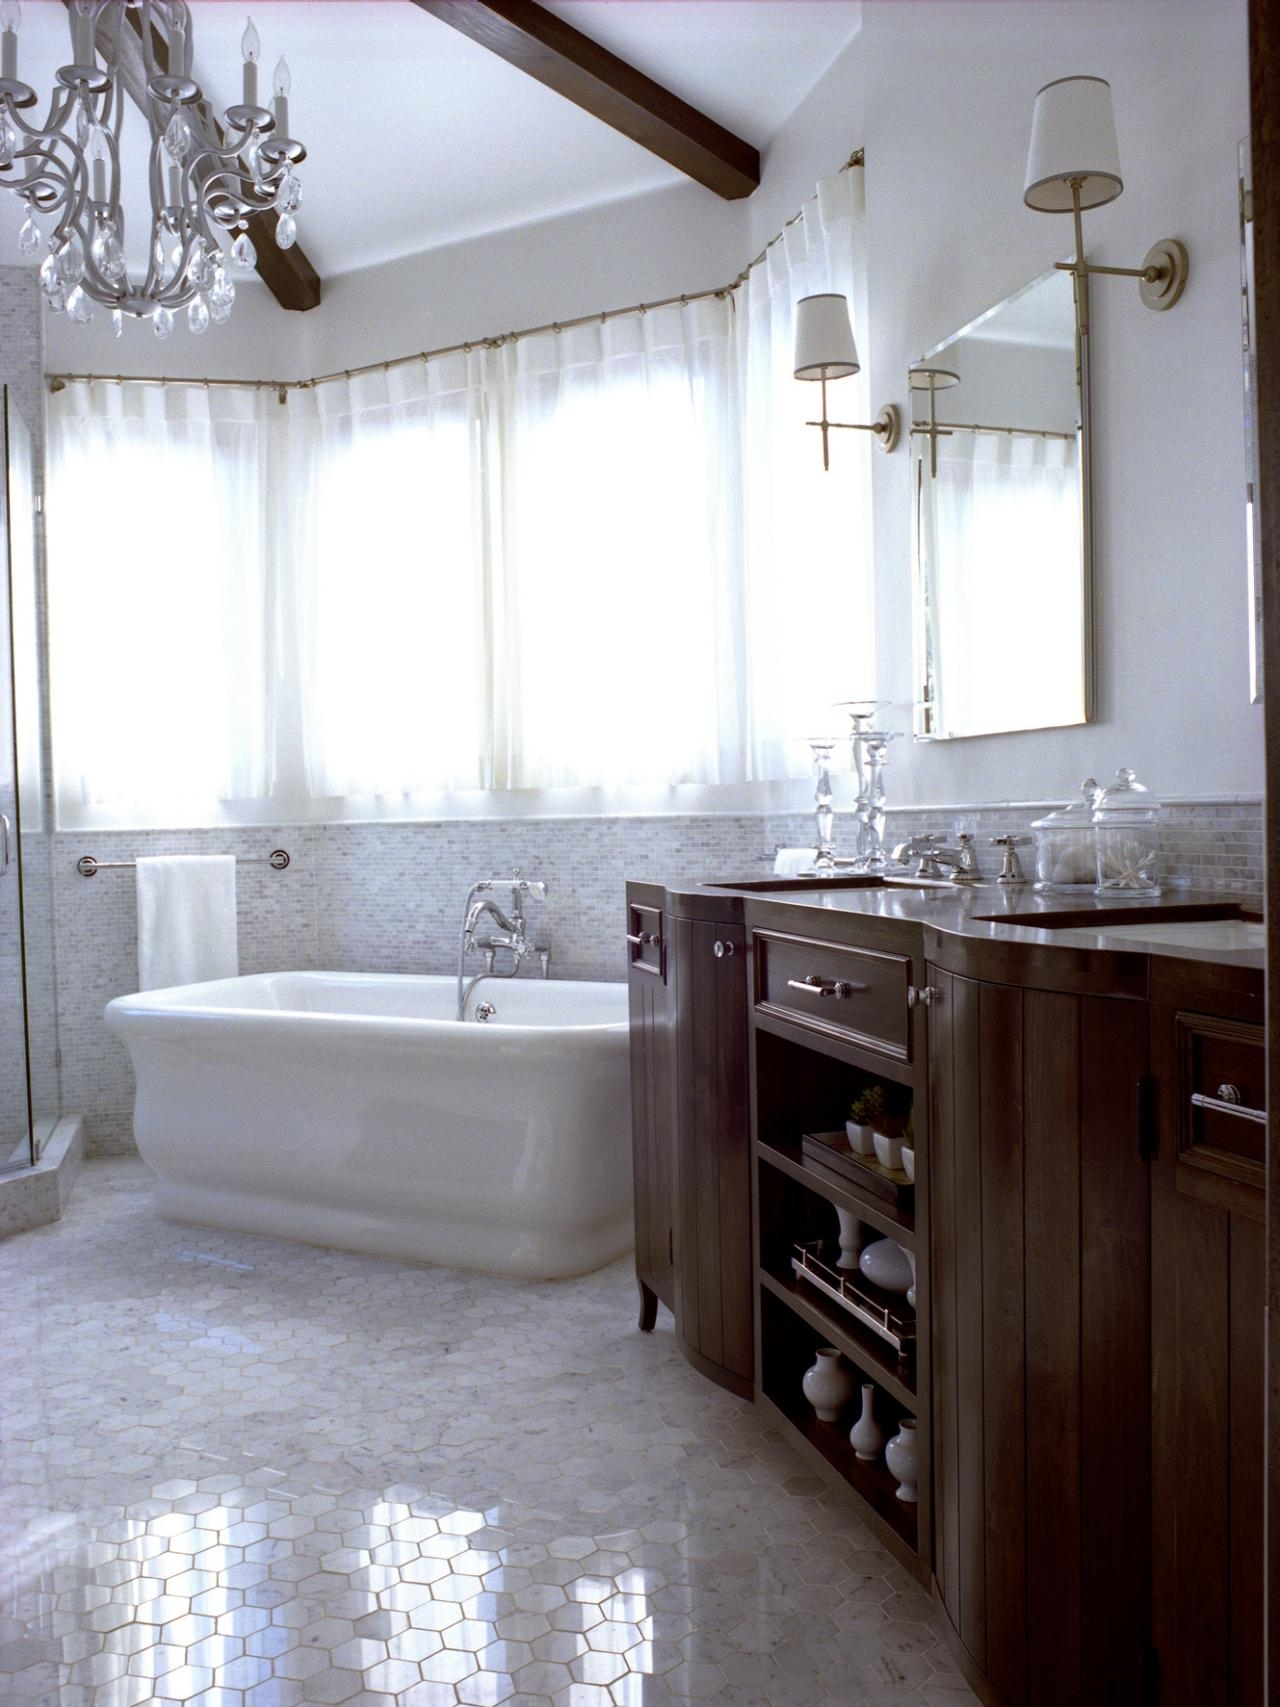 Most Recent Light : Cute Bathroom Chandelier For Small Spaces Creative French Inside Bathroom Chandelier Lighting (View 20 of 20)